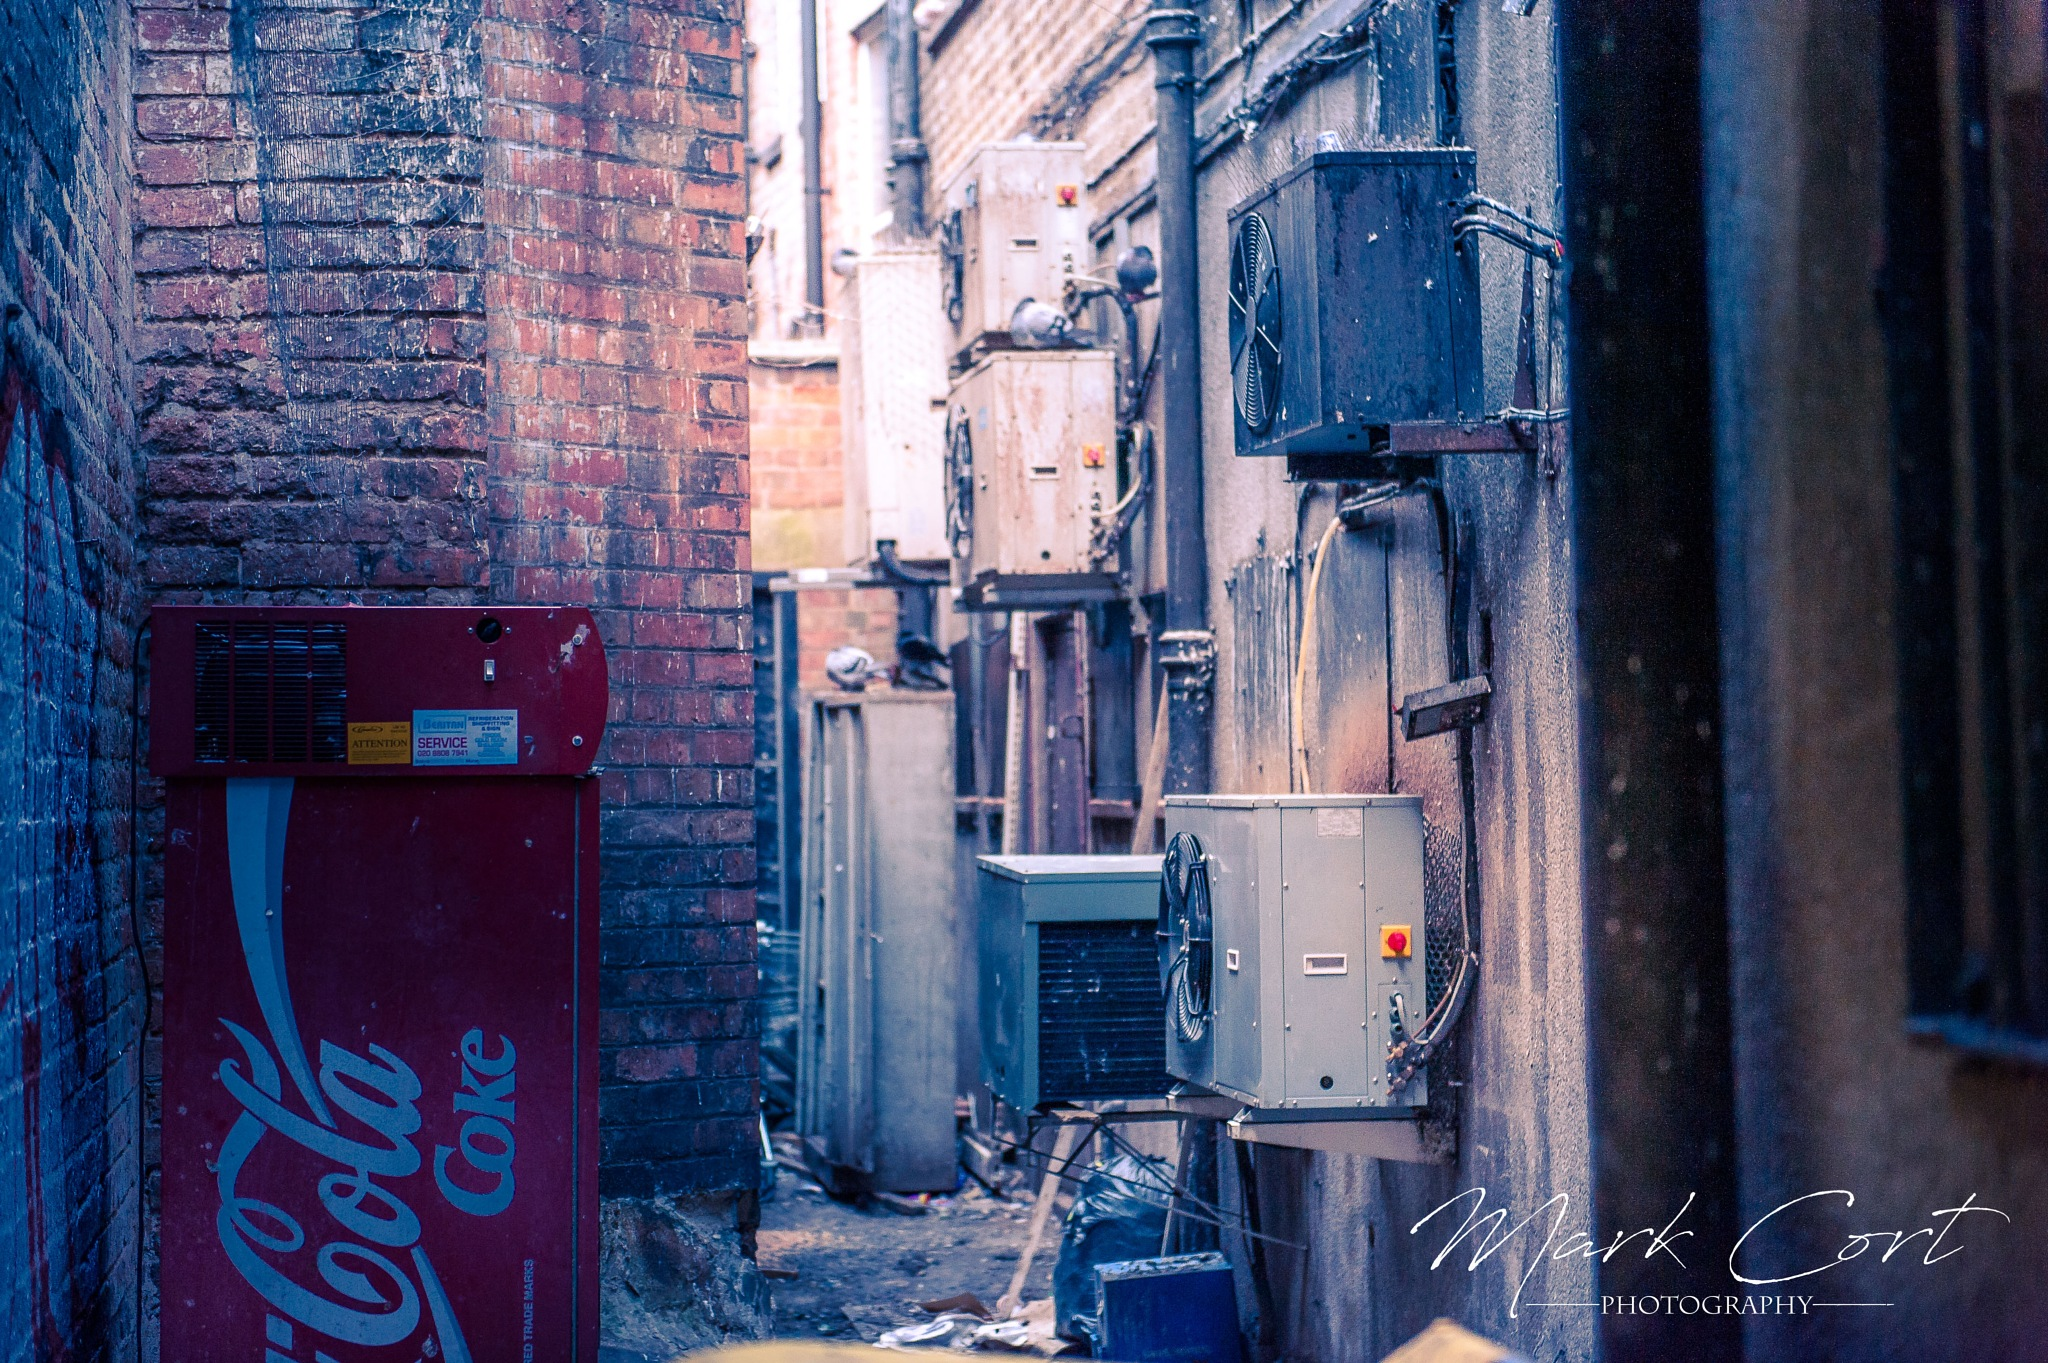 Leicester Alleyway II by Mark Cort